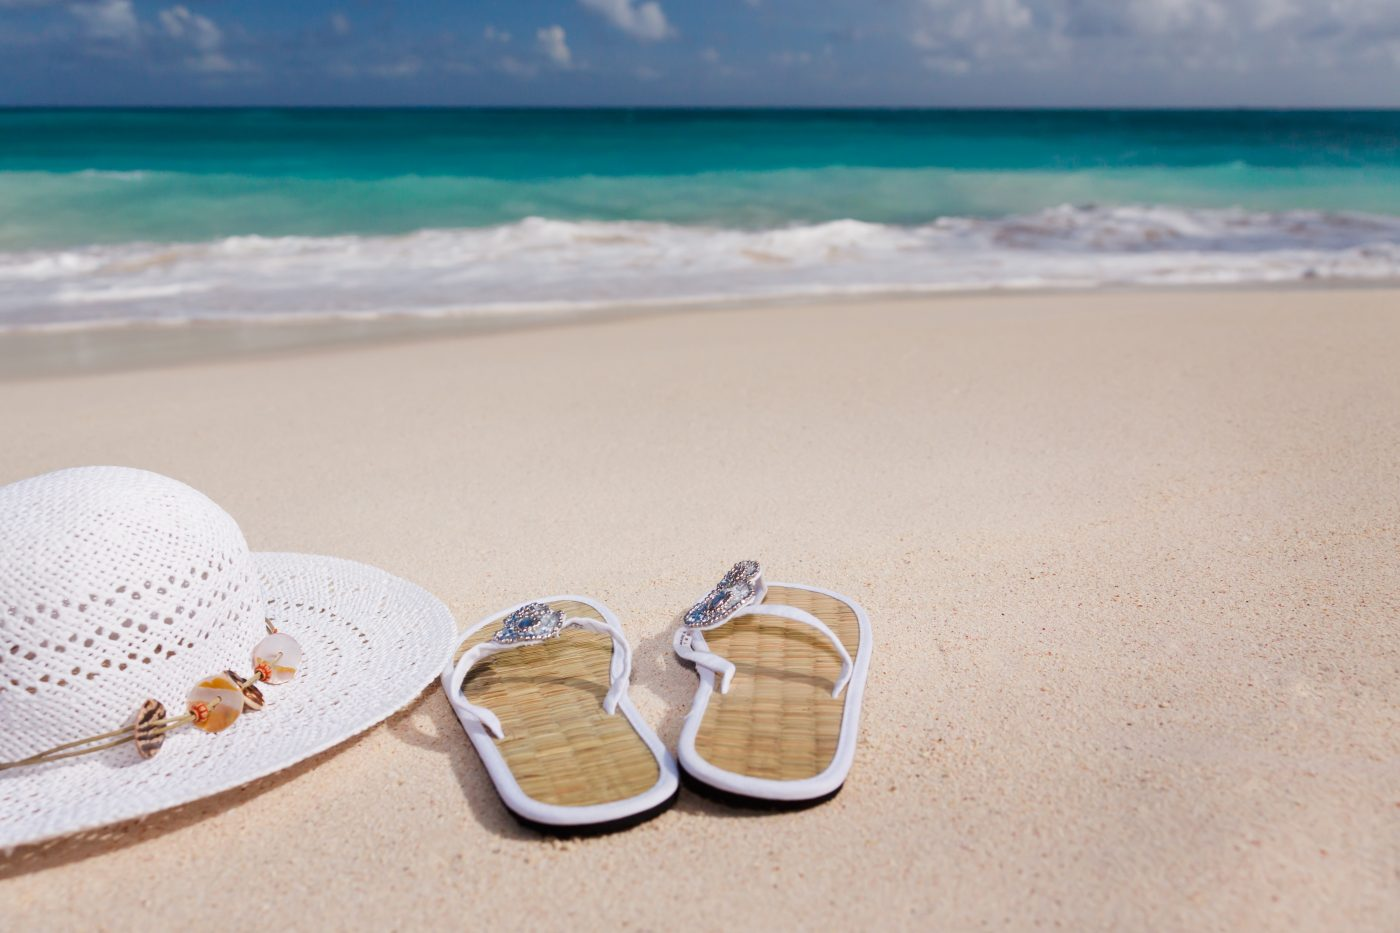 me time during a couples trip: sandals and hat on the beach